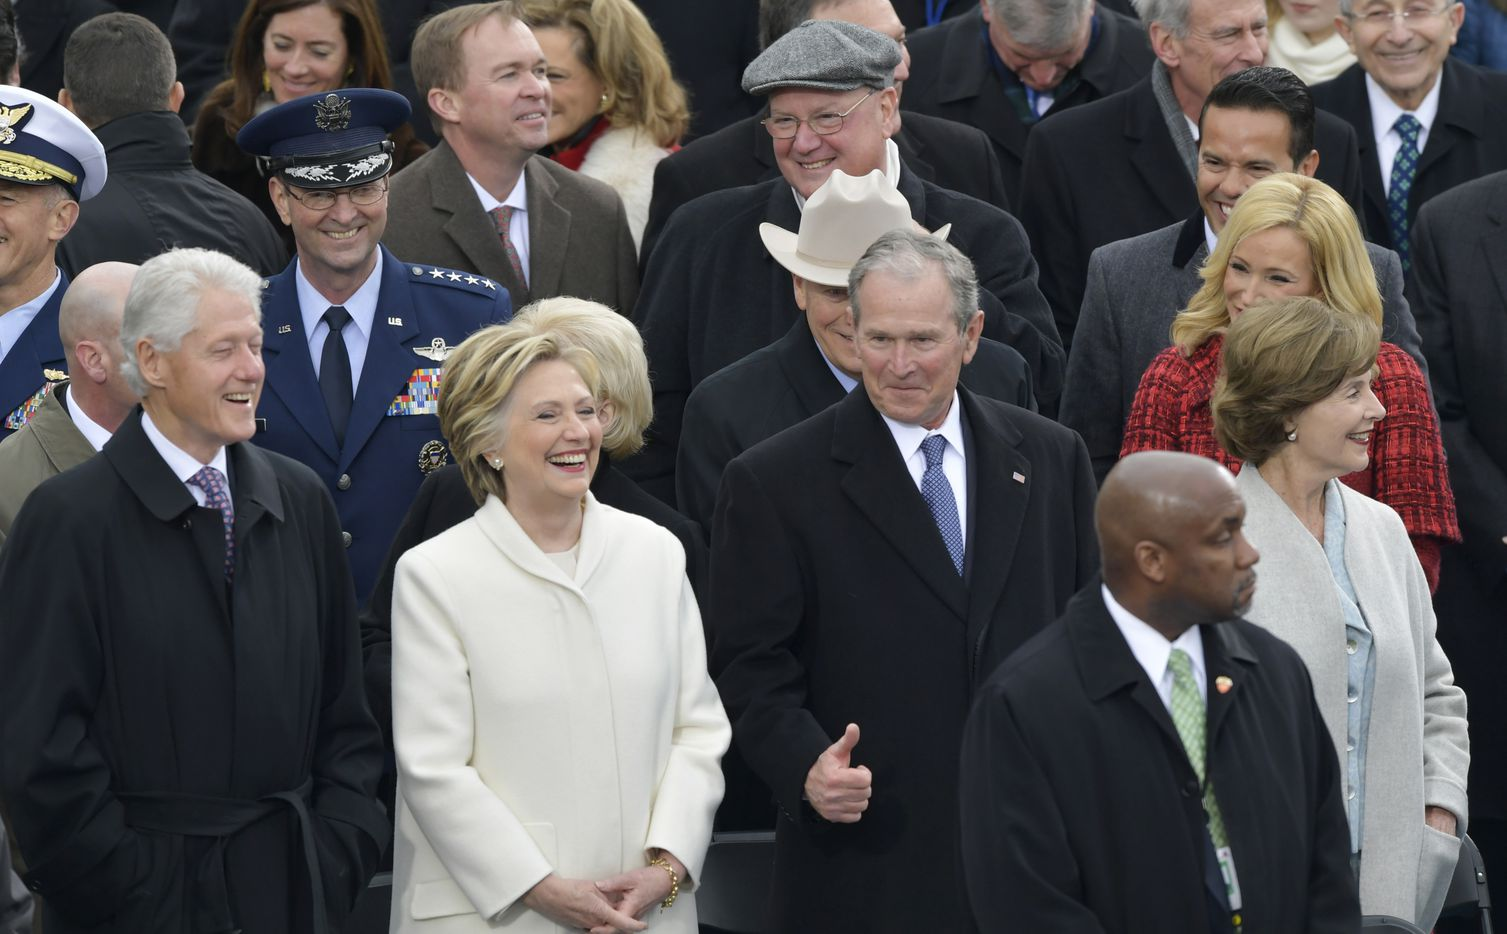 Former President George W. Bush, right, his wife Laura, Former Secretary of State Hillary Clinton and Former President Bill Clinton wait for the 58th Presidential Inauguration for President-elect Donald Trump.